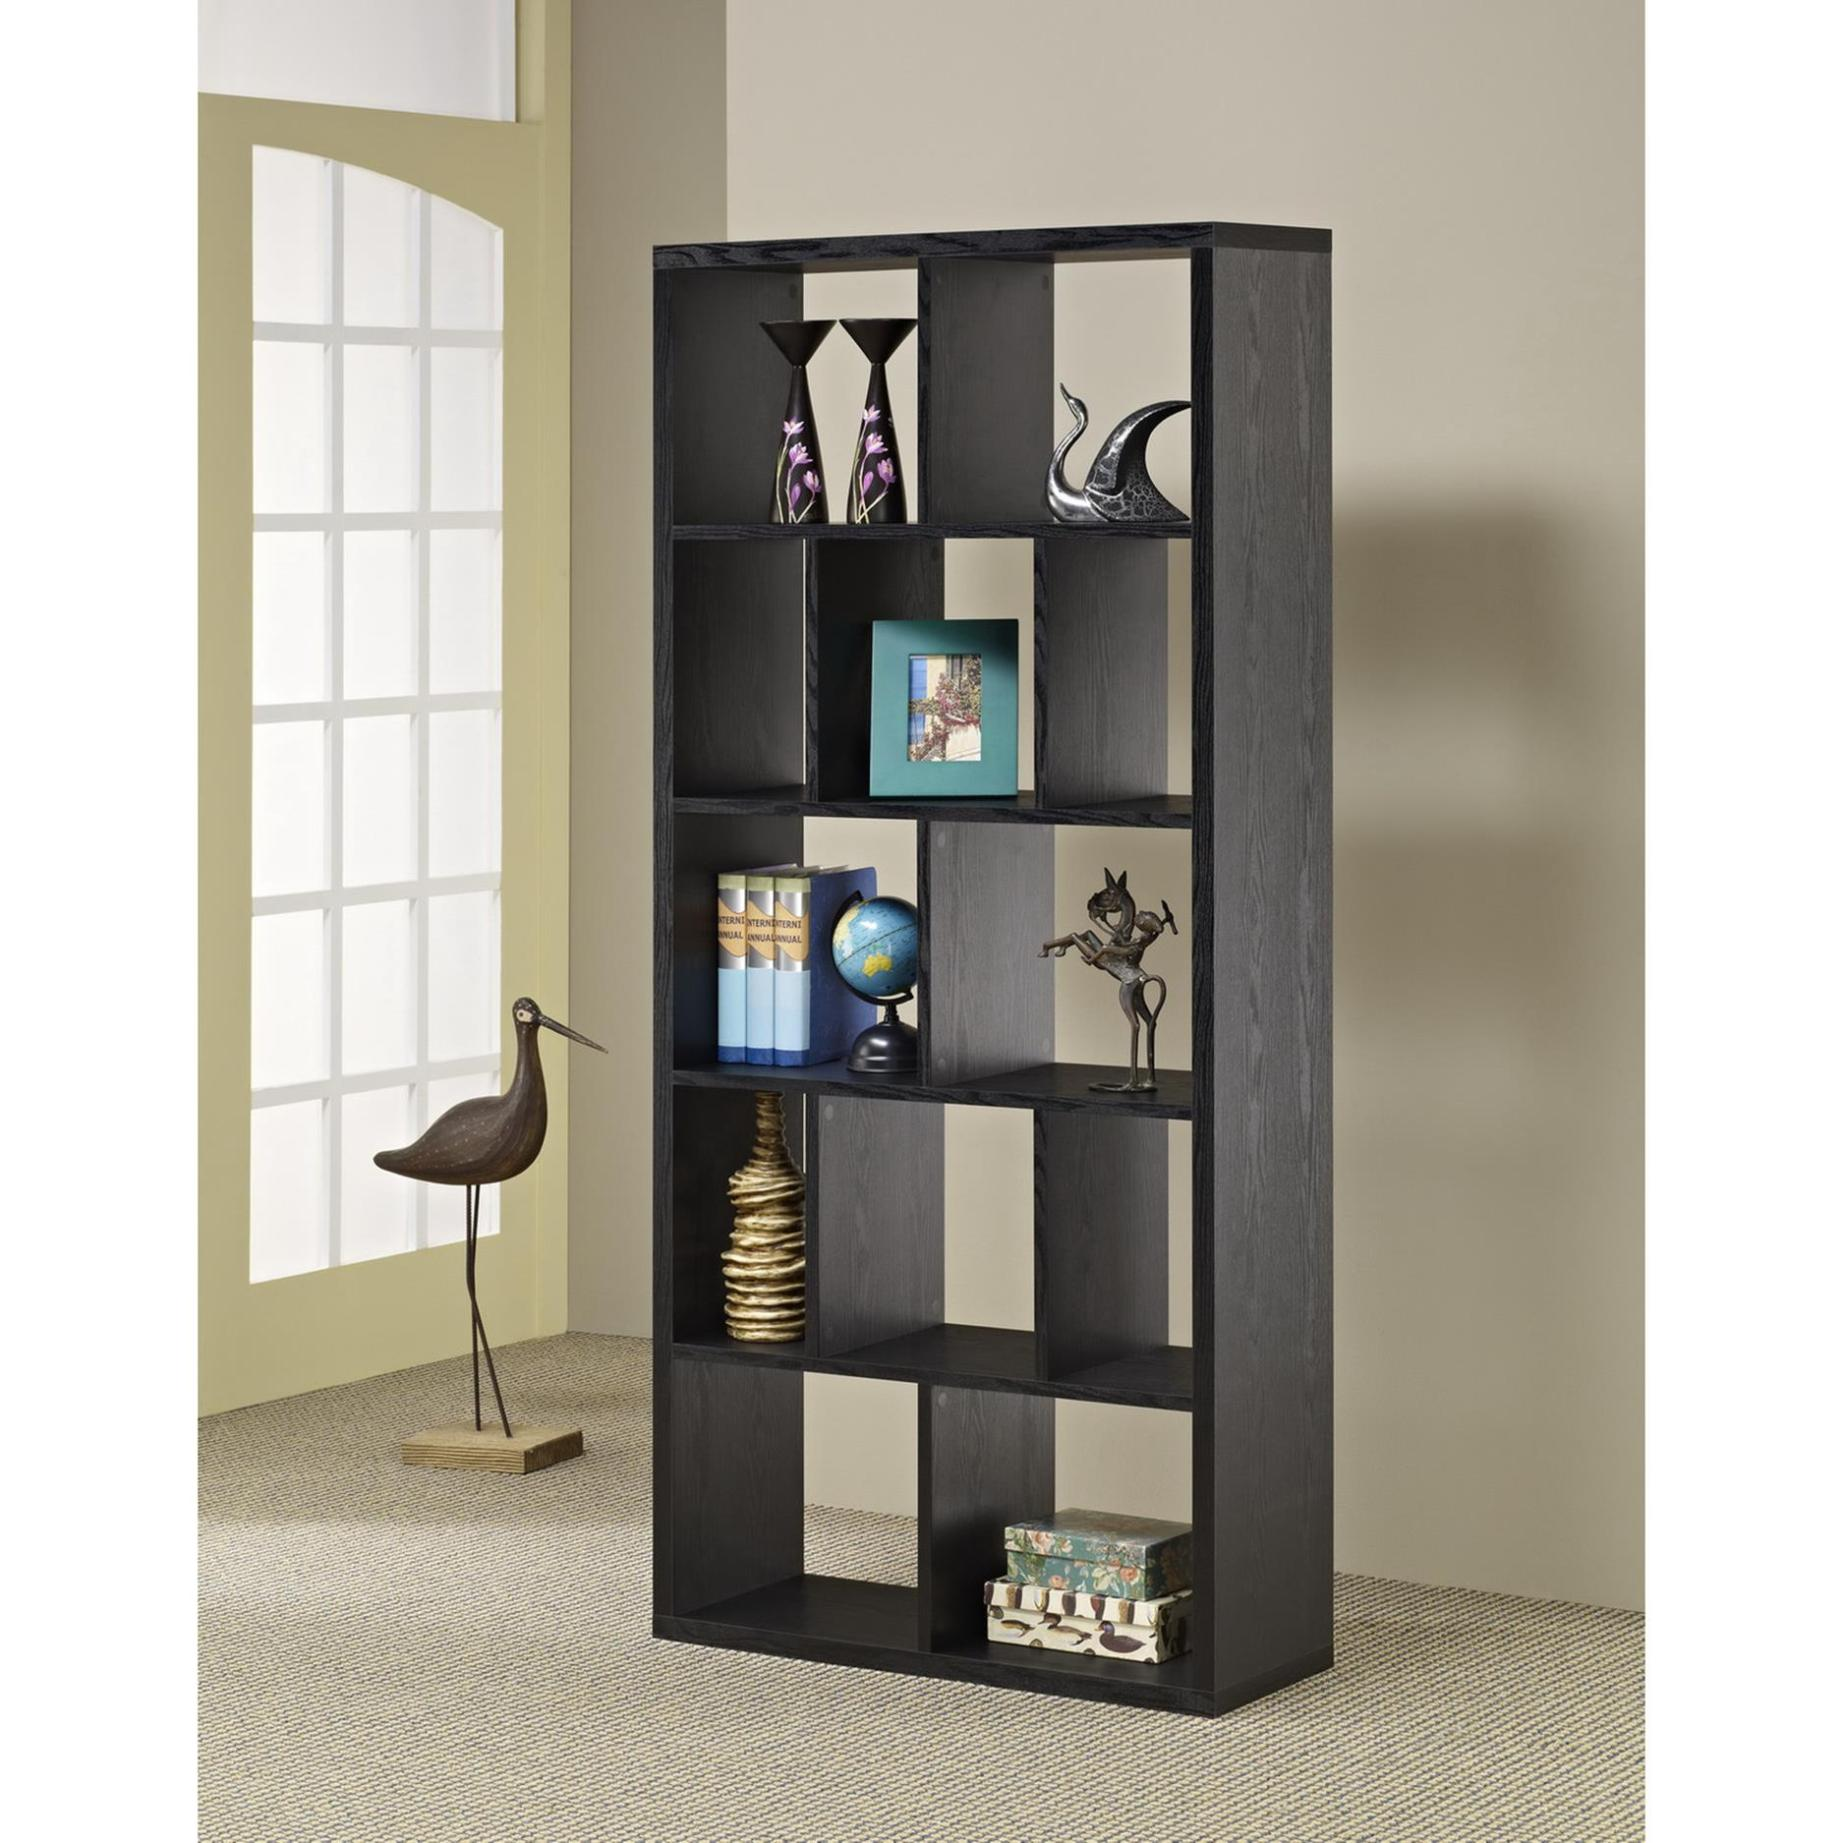 Perfect Bookshelves For Small Spaces and Decor Ideas 35